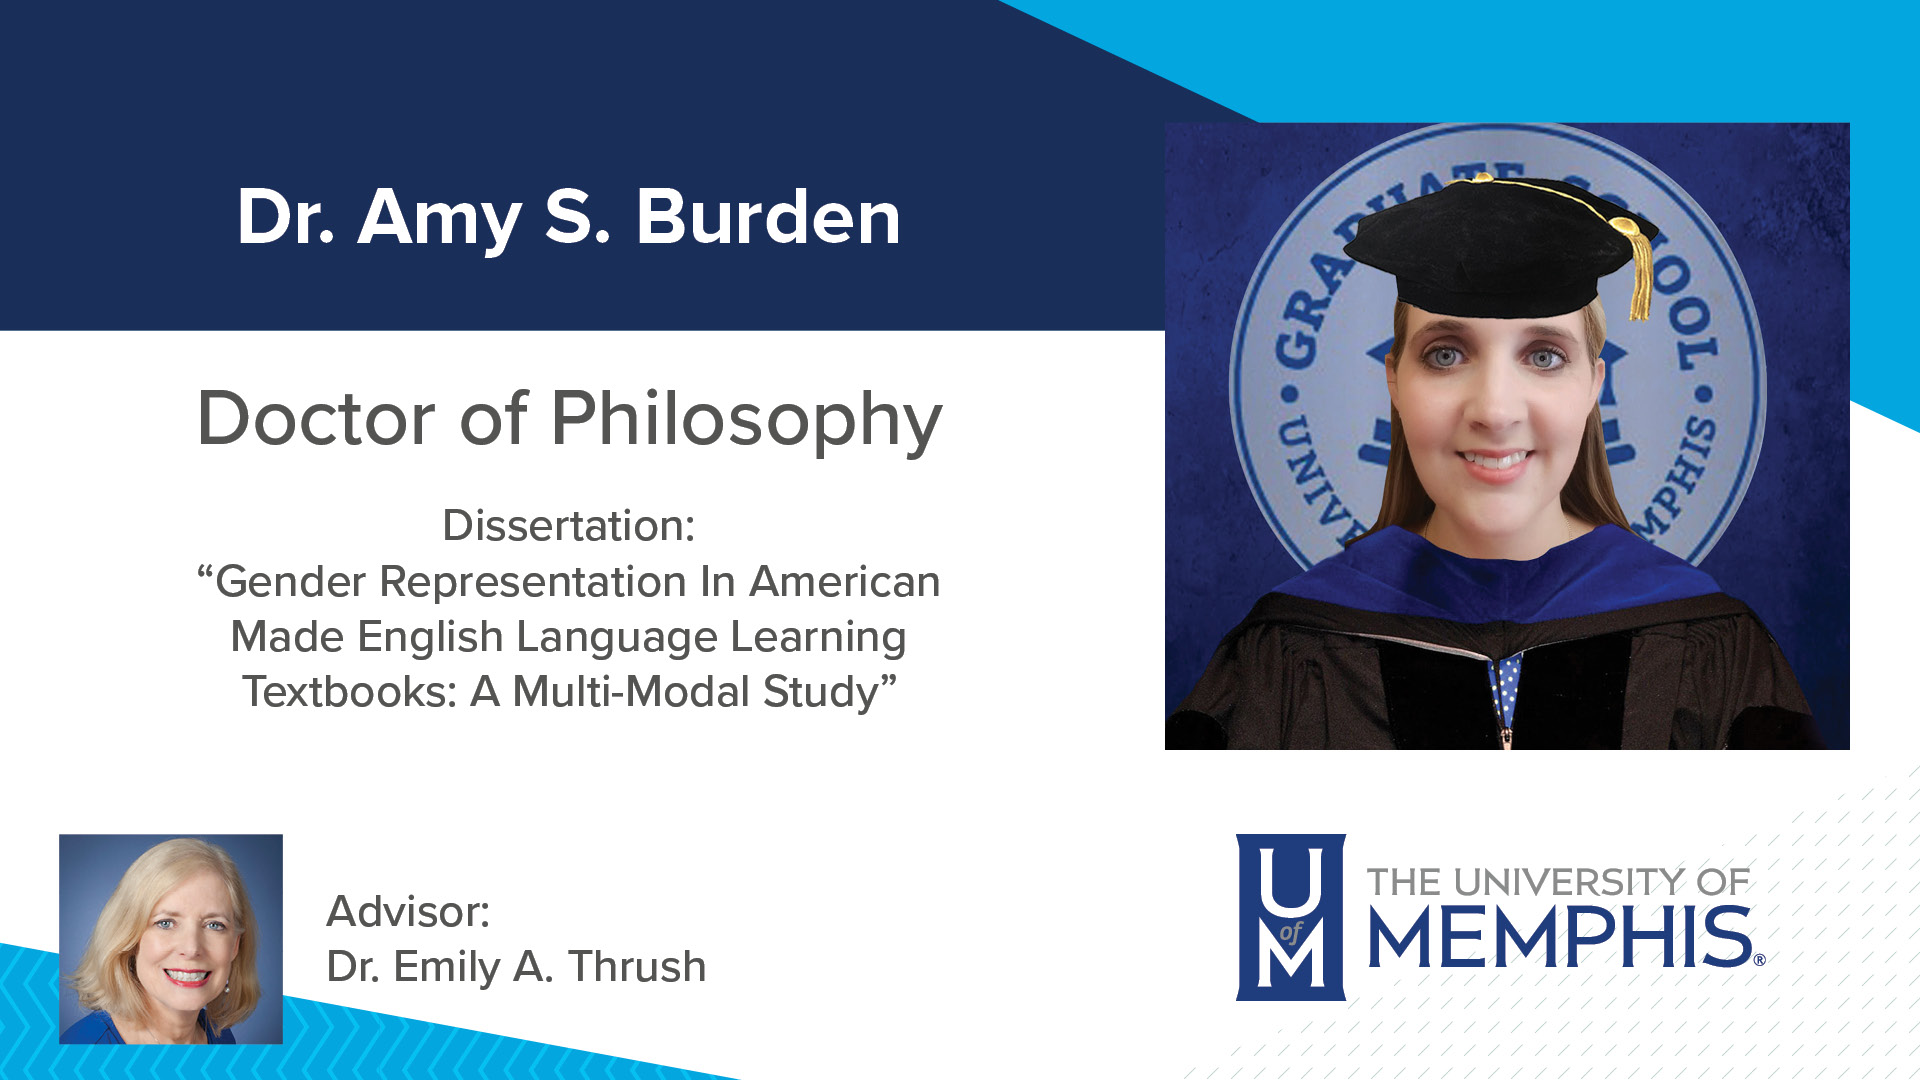 """Dr. Amy S Burden Doctor of Philosophy Dissertation: """"Gender Representation In American Made English Language Learning Textbooks: A Multi-Modal Study"""" Advisor: Dr. Emily A Thrush"""